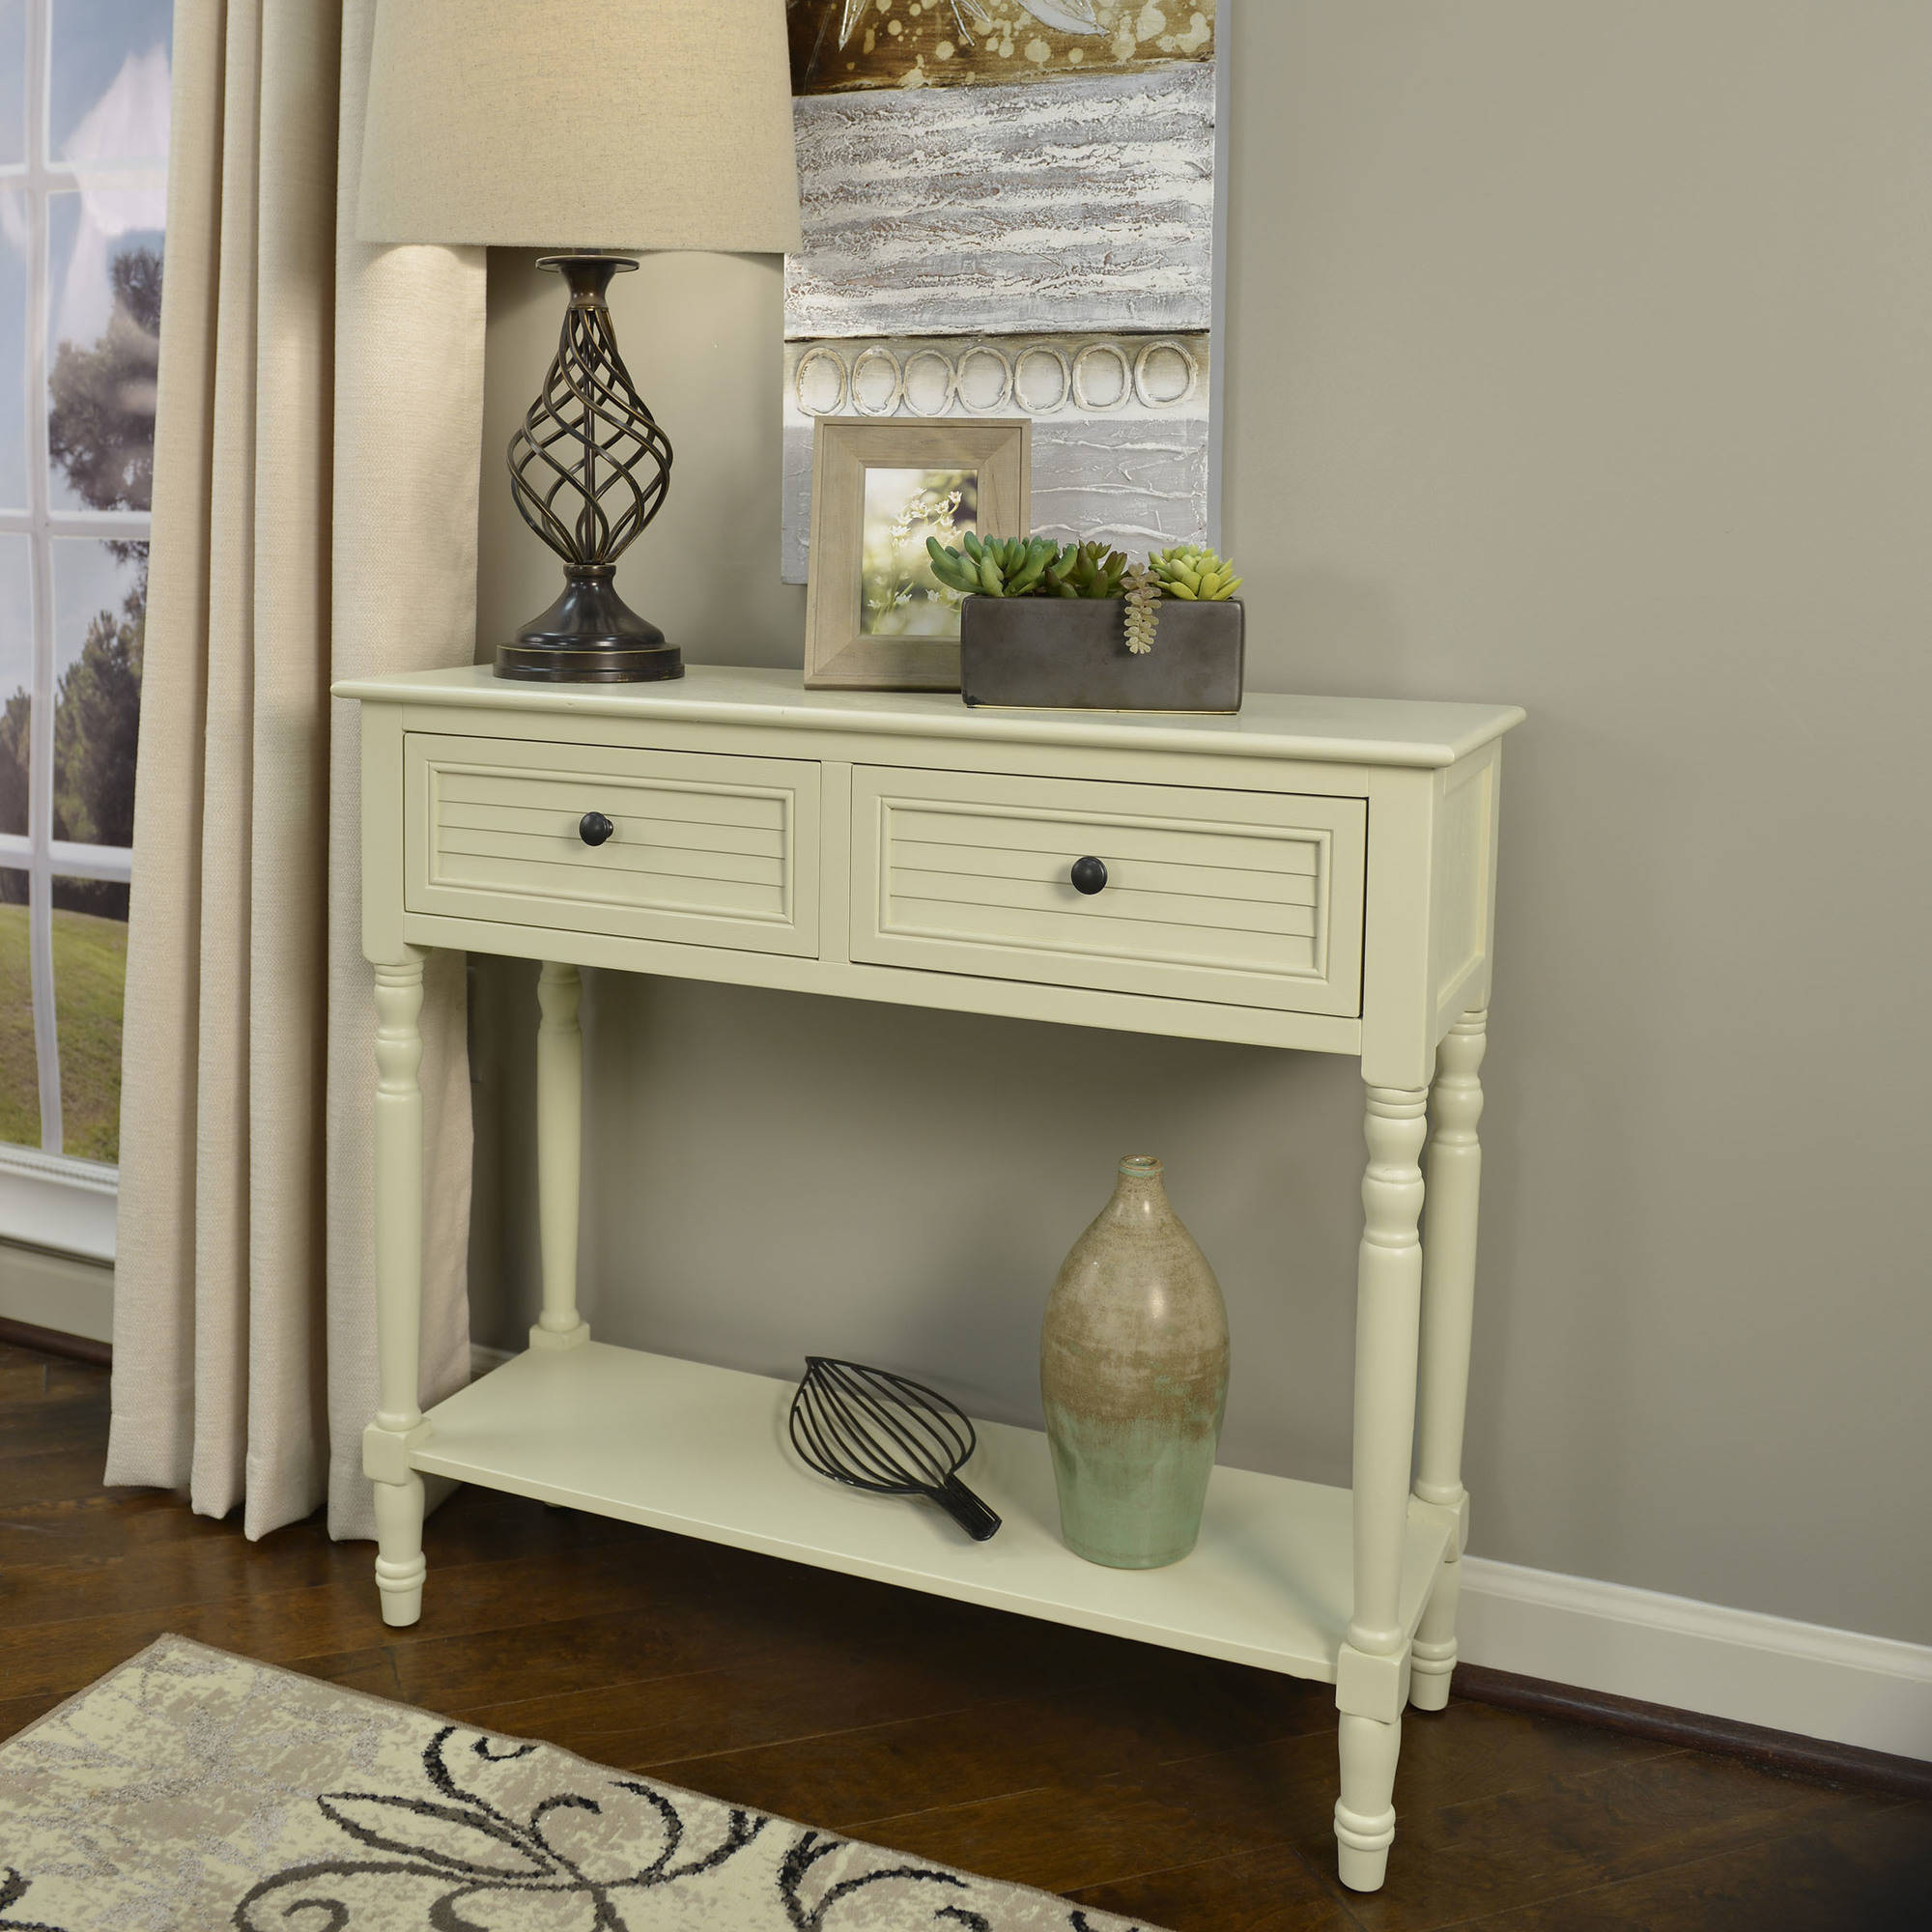 Better Homes and Gardens Shutter 2-Drawer Console Table, Multiple Colors